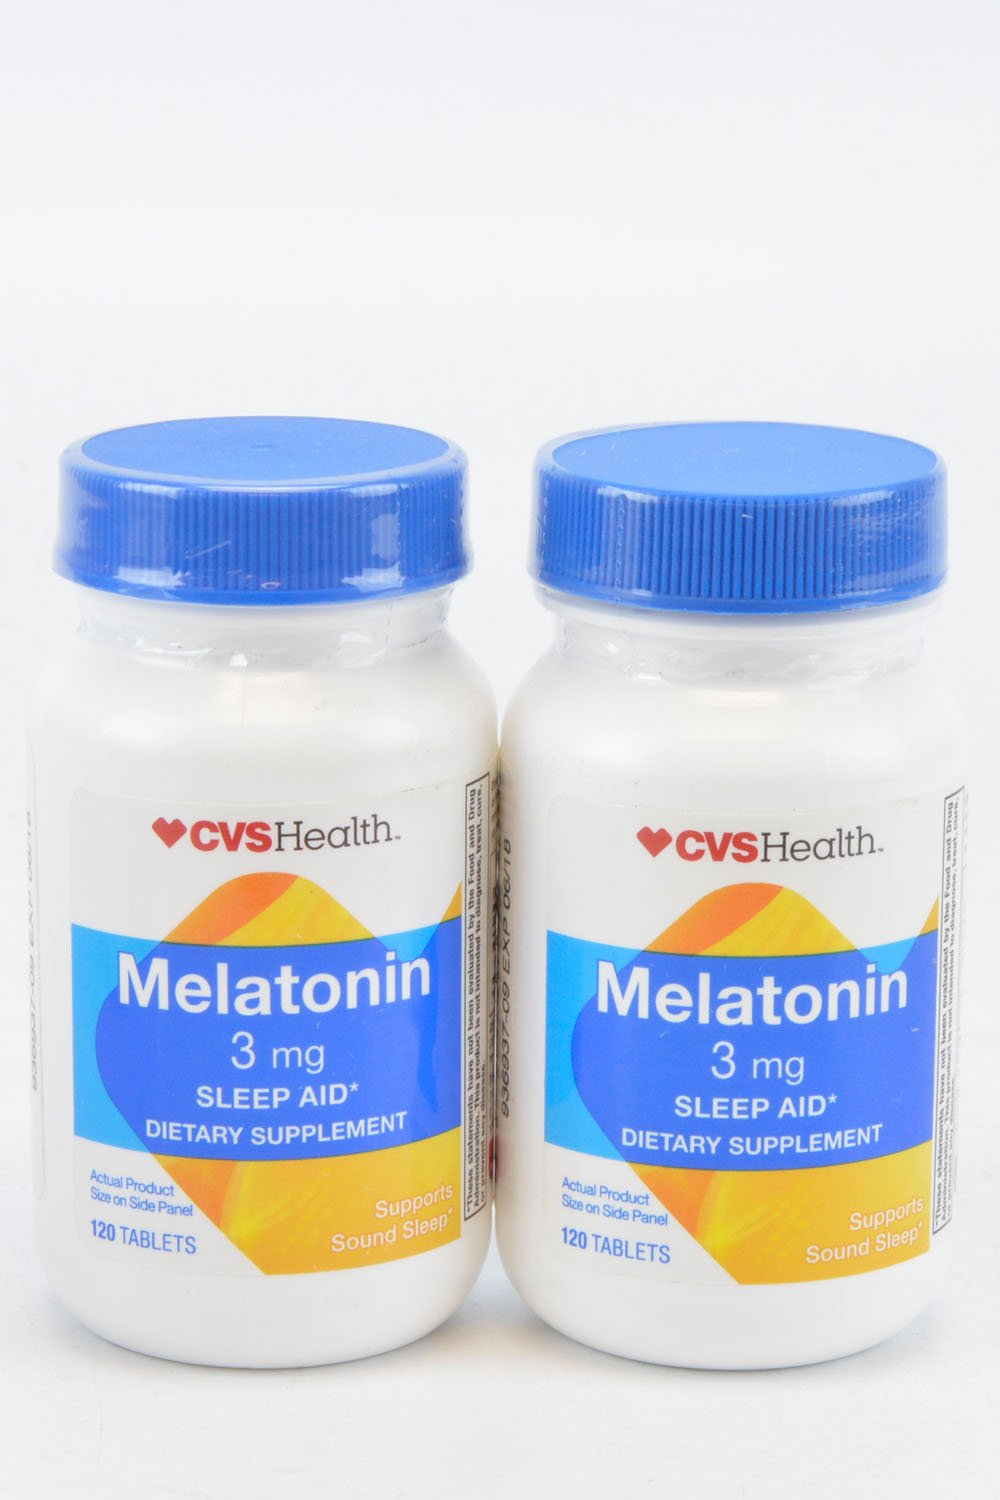 Amazon.com: (Pack of 2) CVS Melatonin 3mg Dietary Supplement 120 Tablets: Health & Personal Care